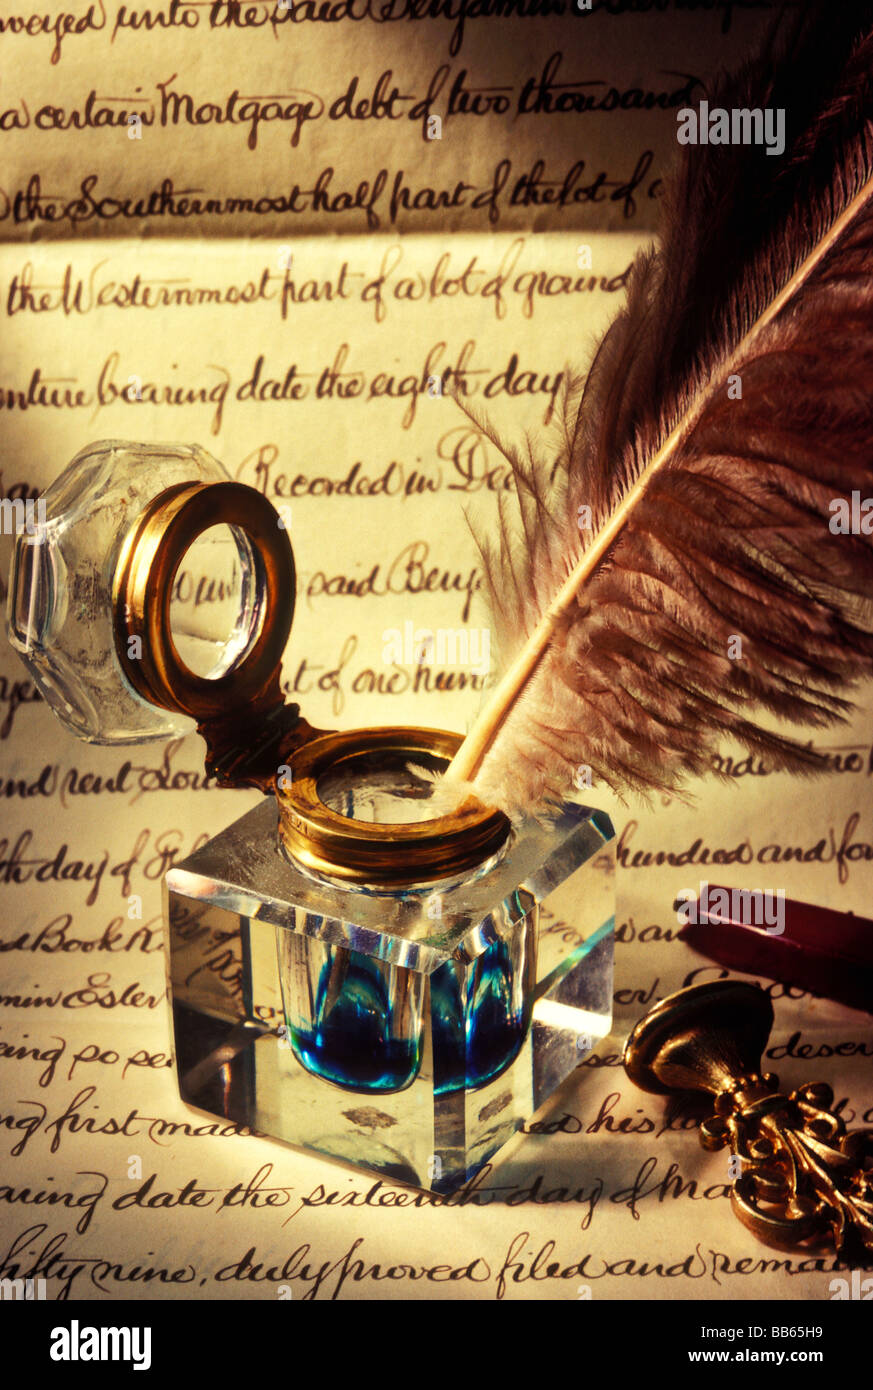 Old glass inkwell and quill Stock Photo: 24107701 - AlamyQuill And Inkwell Image